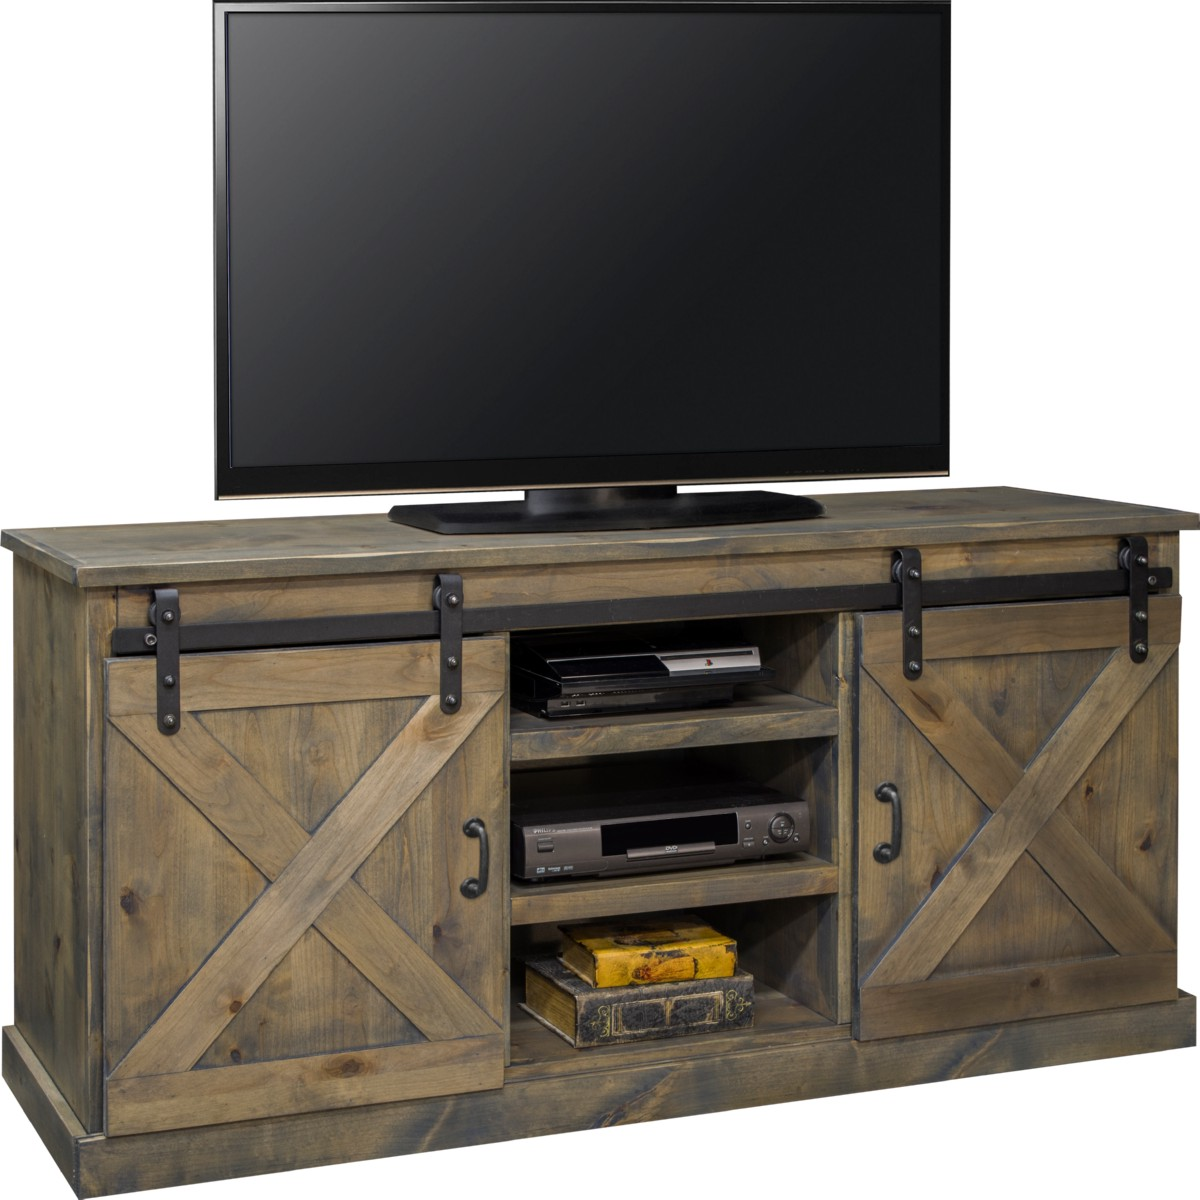 Legends Furniture Fh1420 Bnw Farmhouse 66 Quot Tv Stand